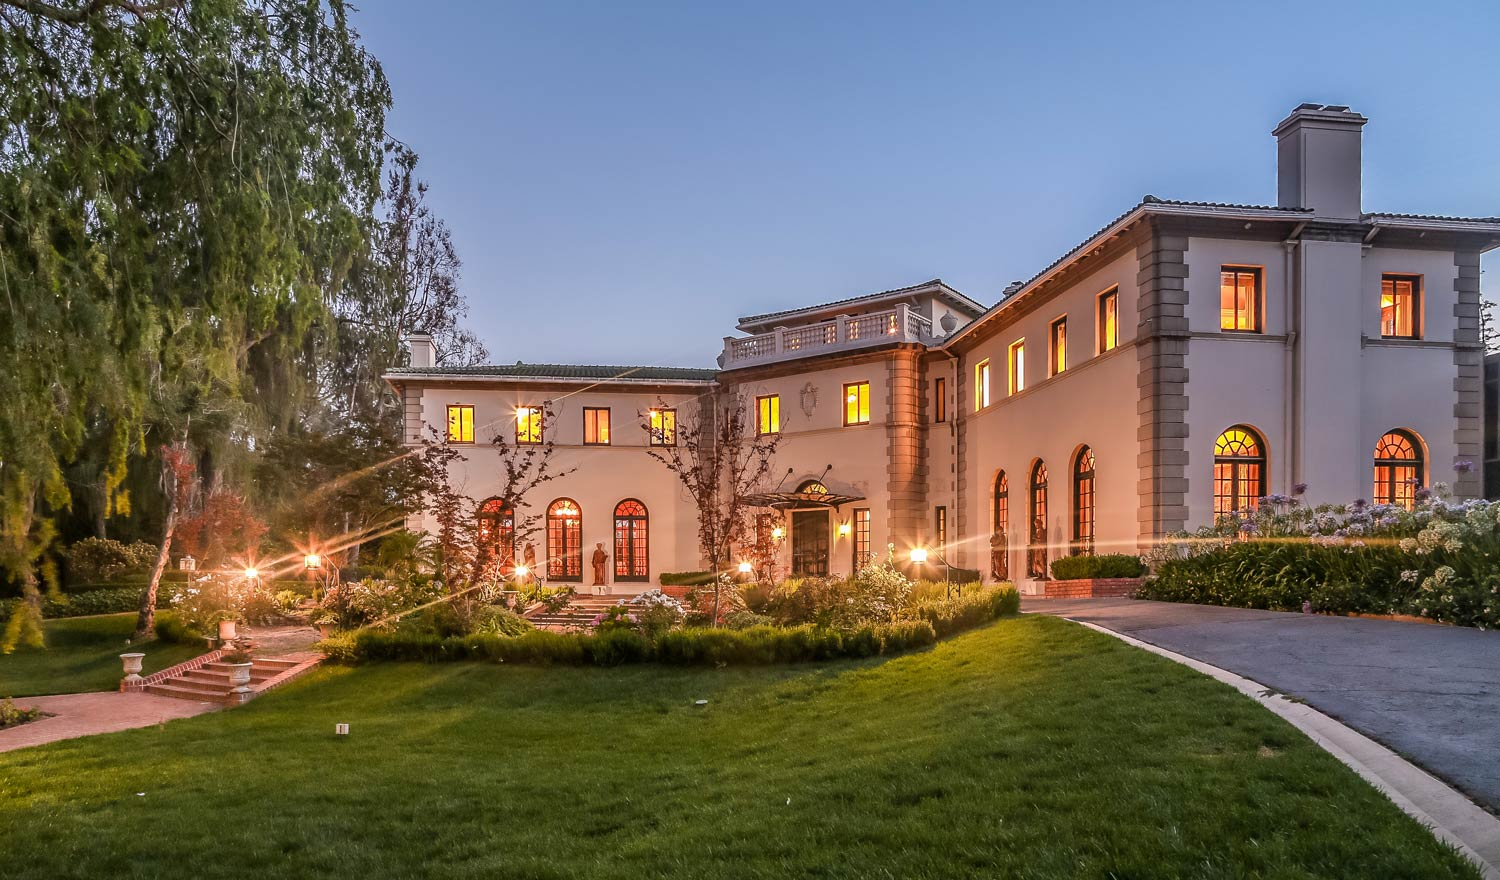 Designed in 1913, this magnificent Italian Palladian villa has been extensively remodeled and maintained. A truly unique property, the home is approx. 9,900 sq.ft and includes a tennis court, swimming pool, and guesthouse. CaliforniaHome.me